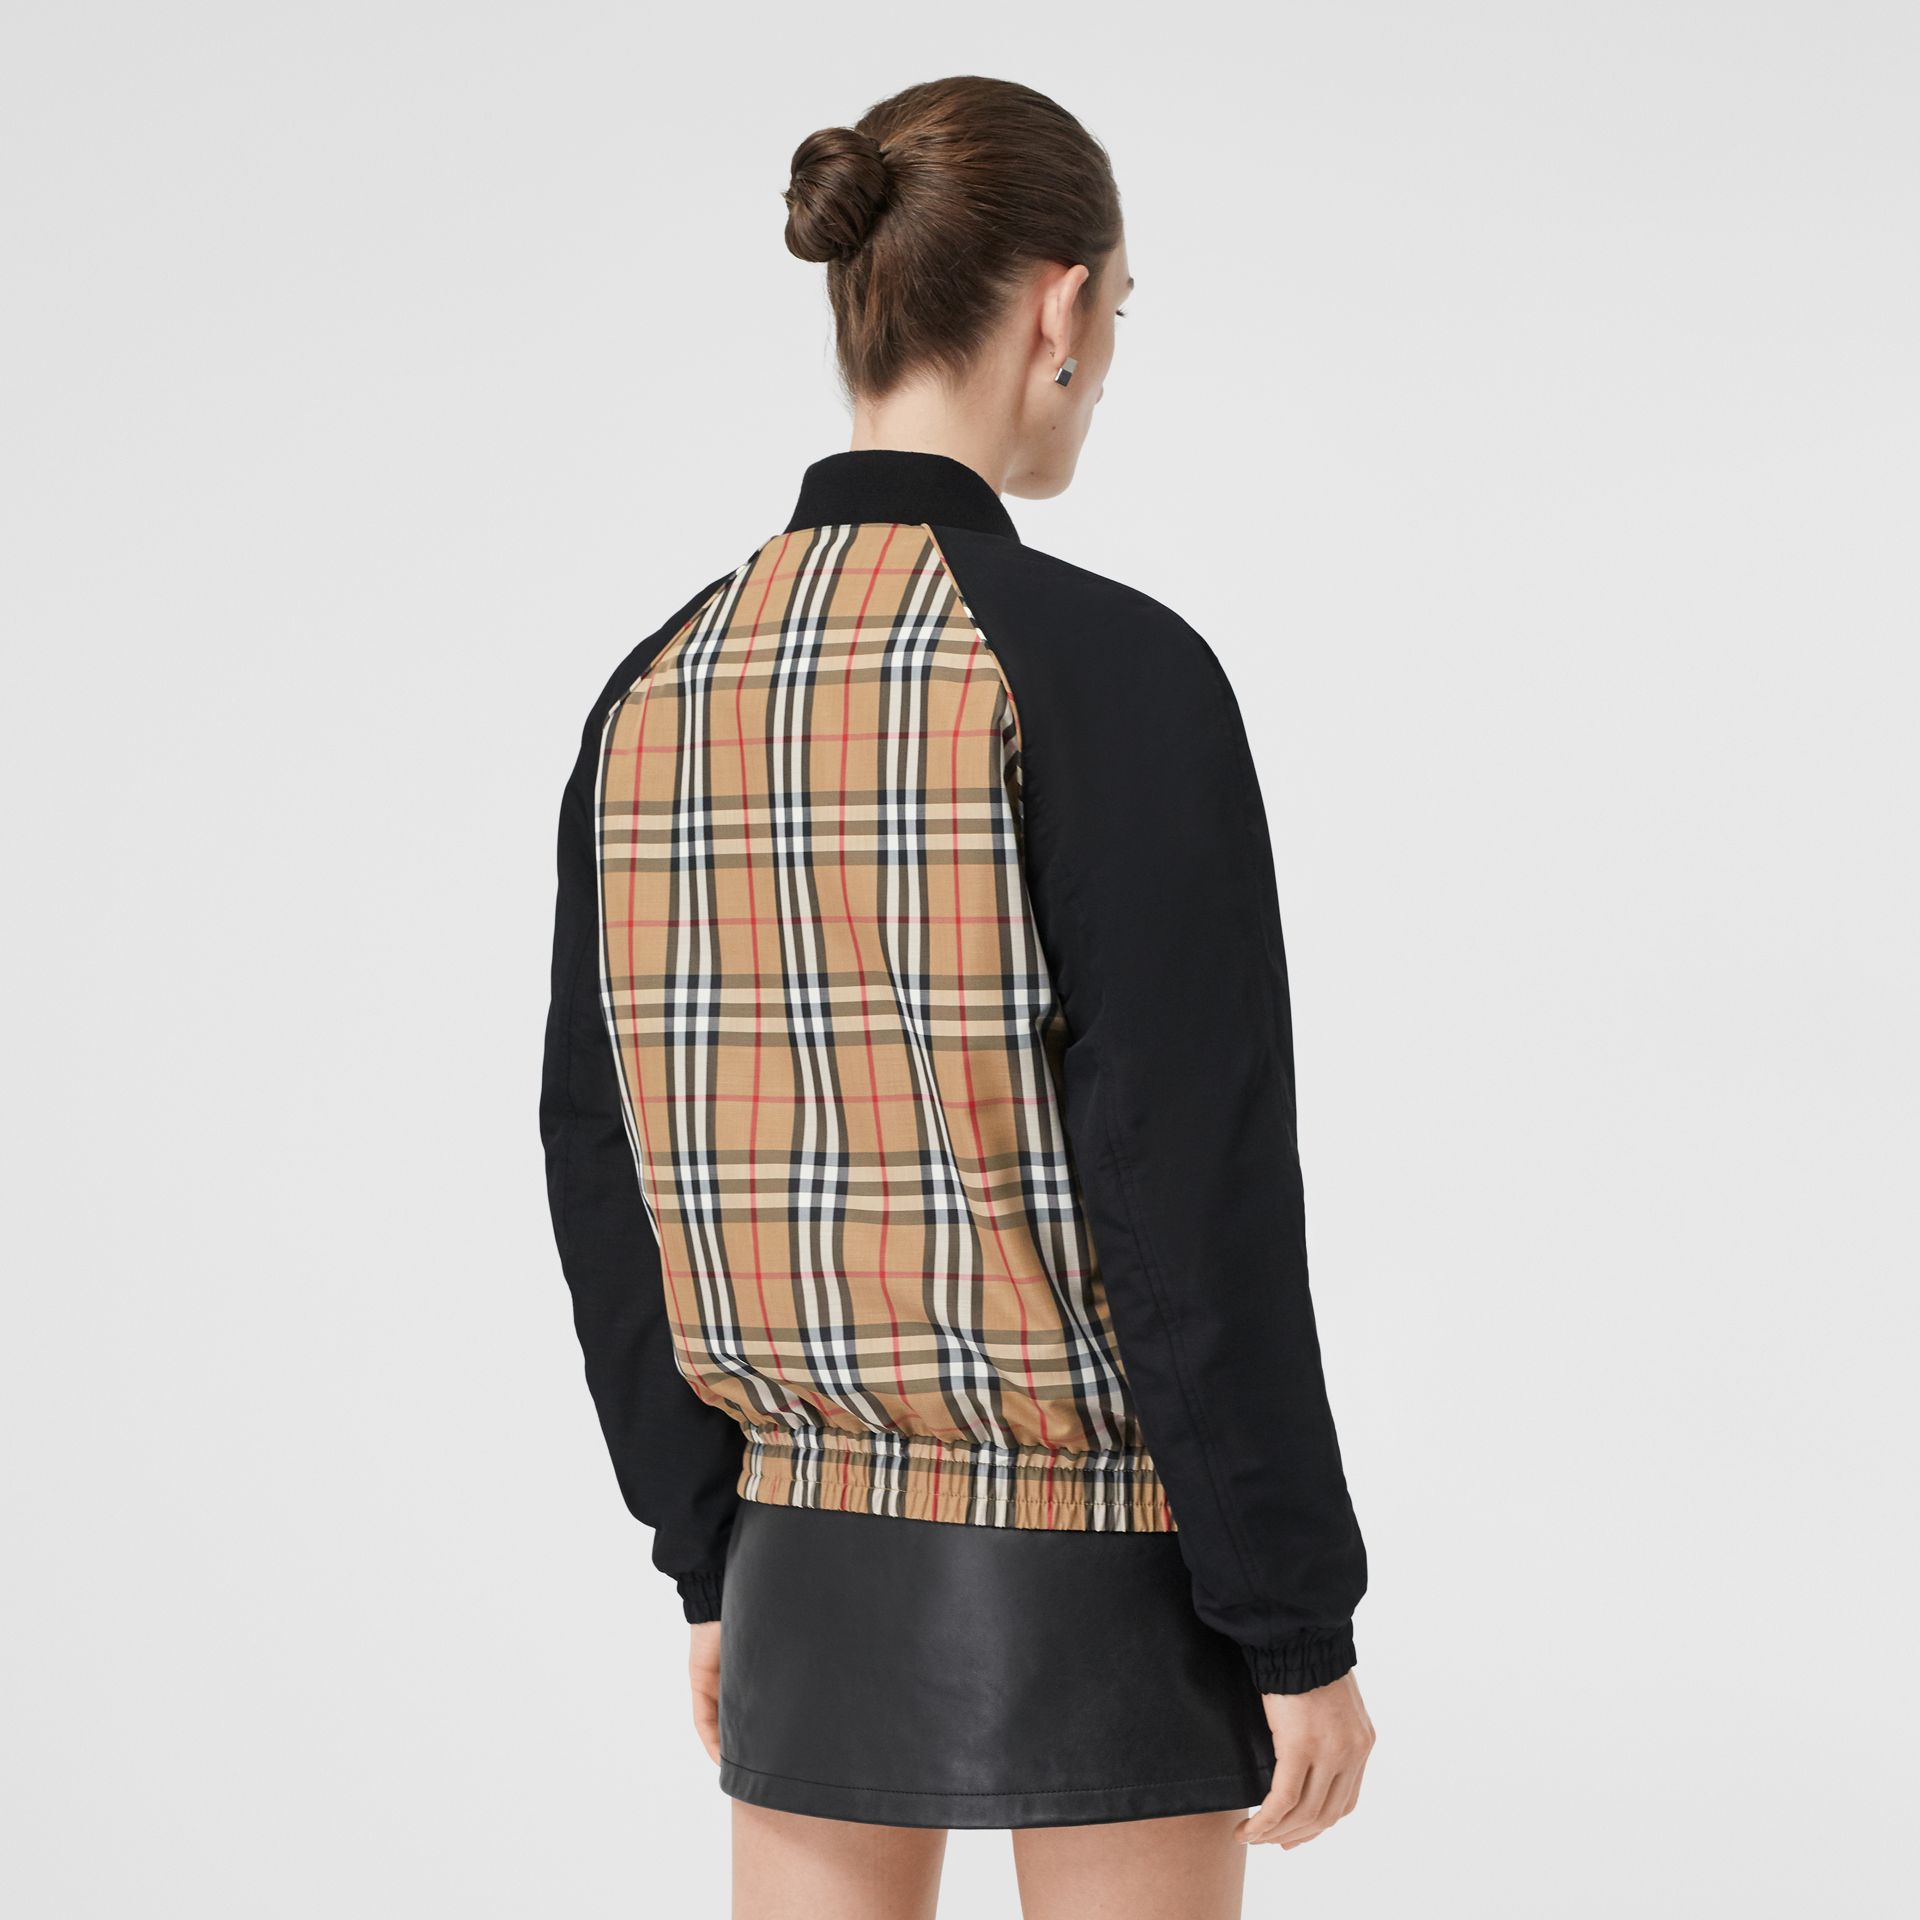 Monogram Motif Vintage Check Bomber Jacket in Black - Women | Burberry Singapore - gallery image 2